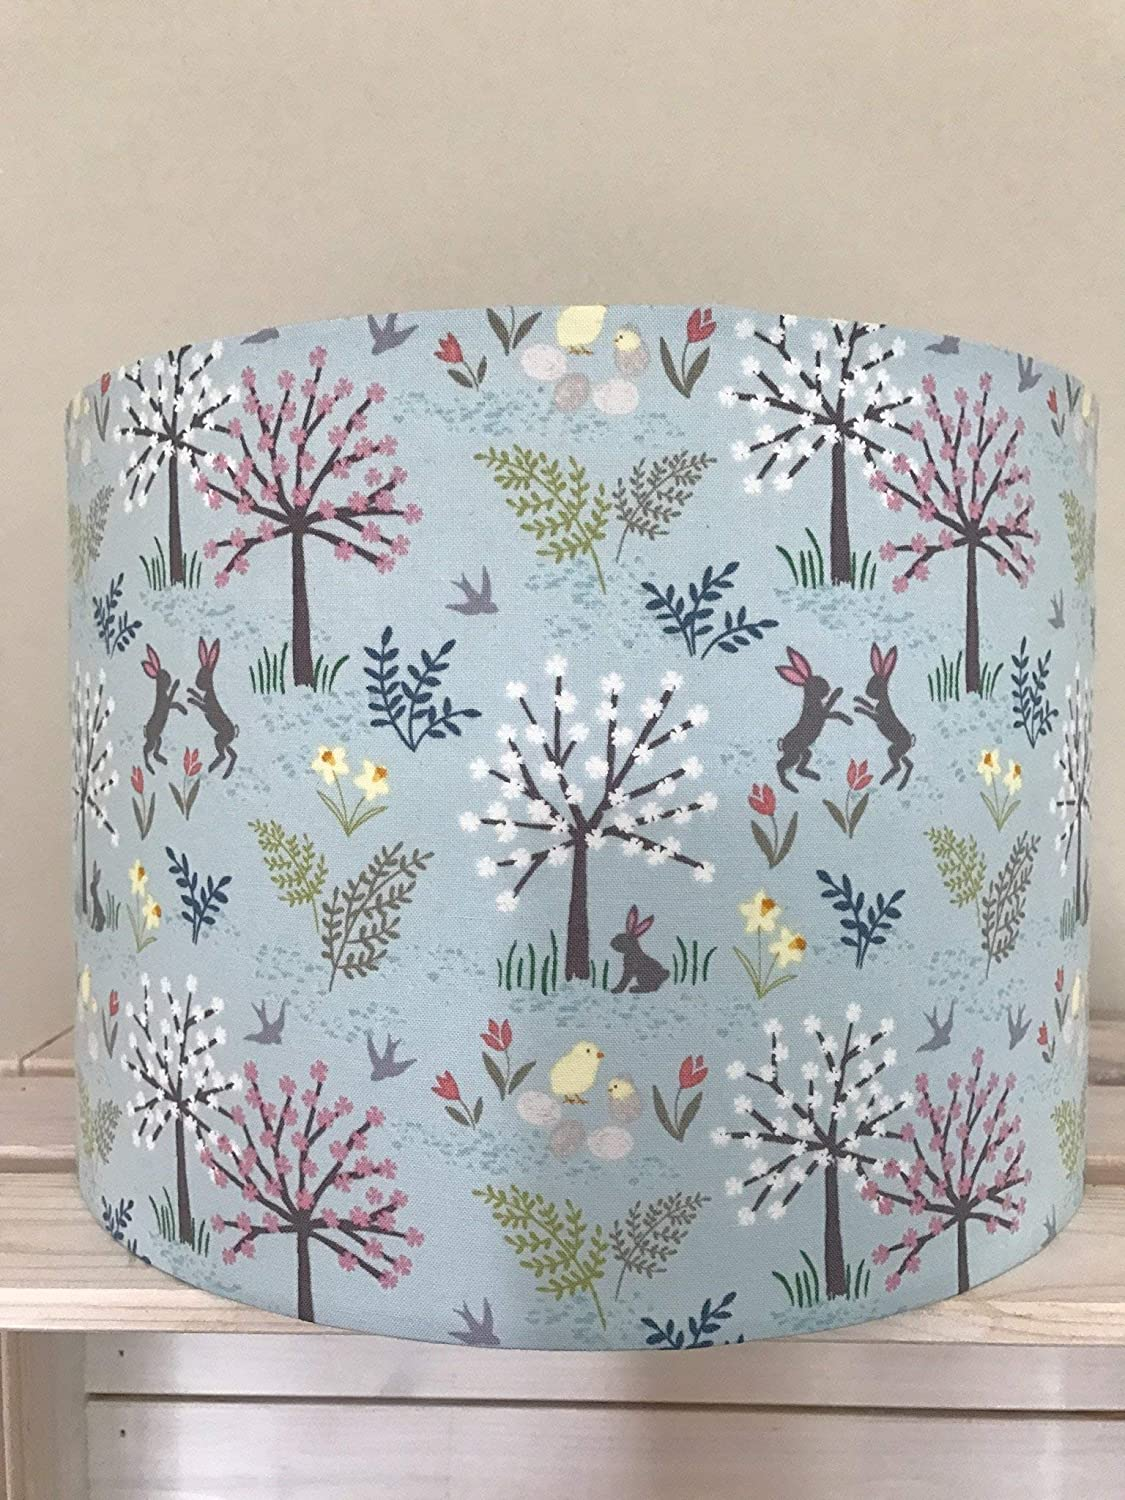 Duck Egg Blue Woodland Scene Drum lampshade with Hares, Chicks and Trees